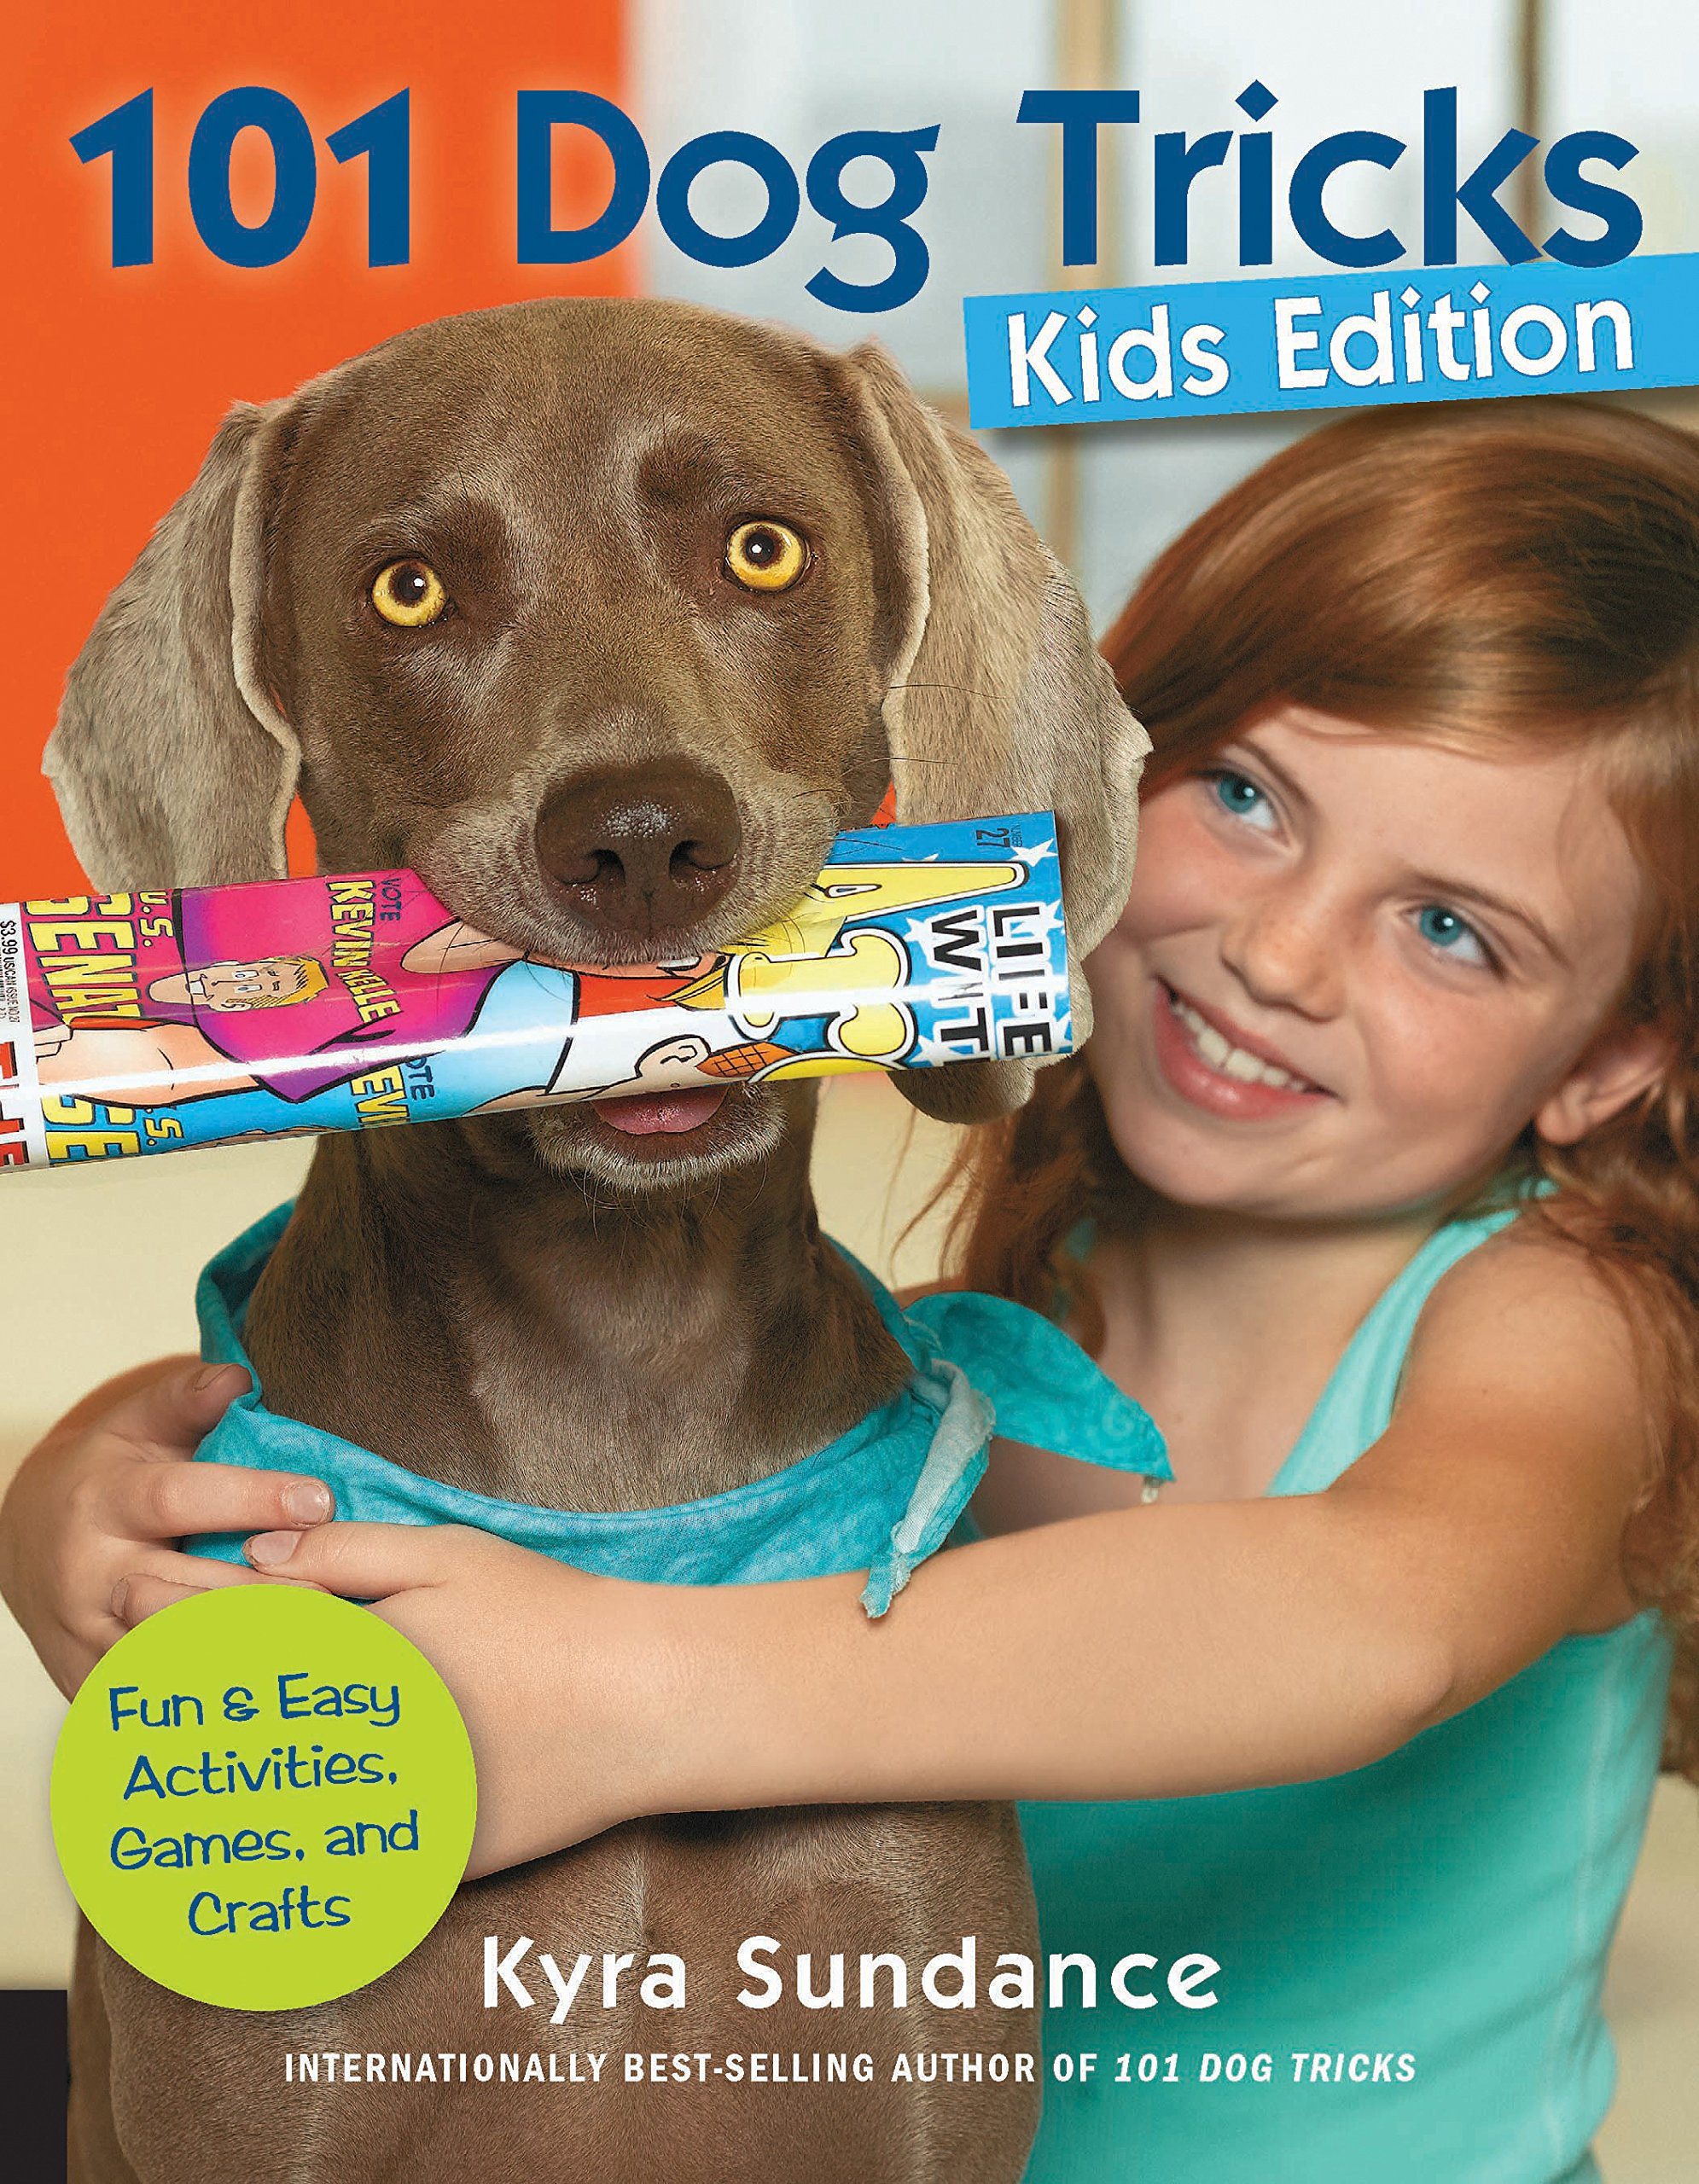 101 Dog Tricks, Kids Edition: Fun and Easy Activities, Games, and Crafts (Dog Tricks and Training, 5)